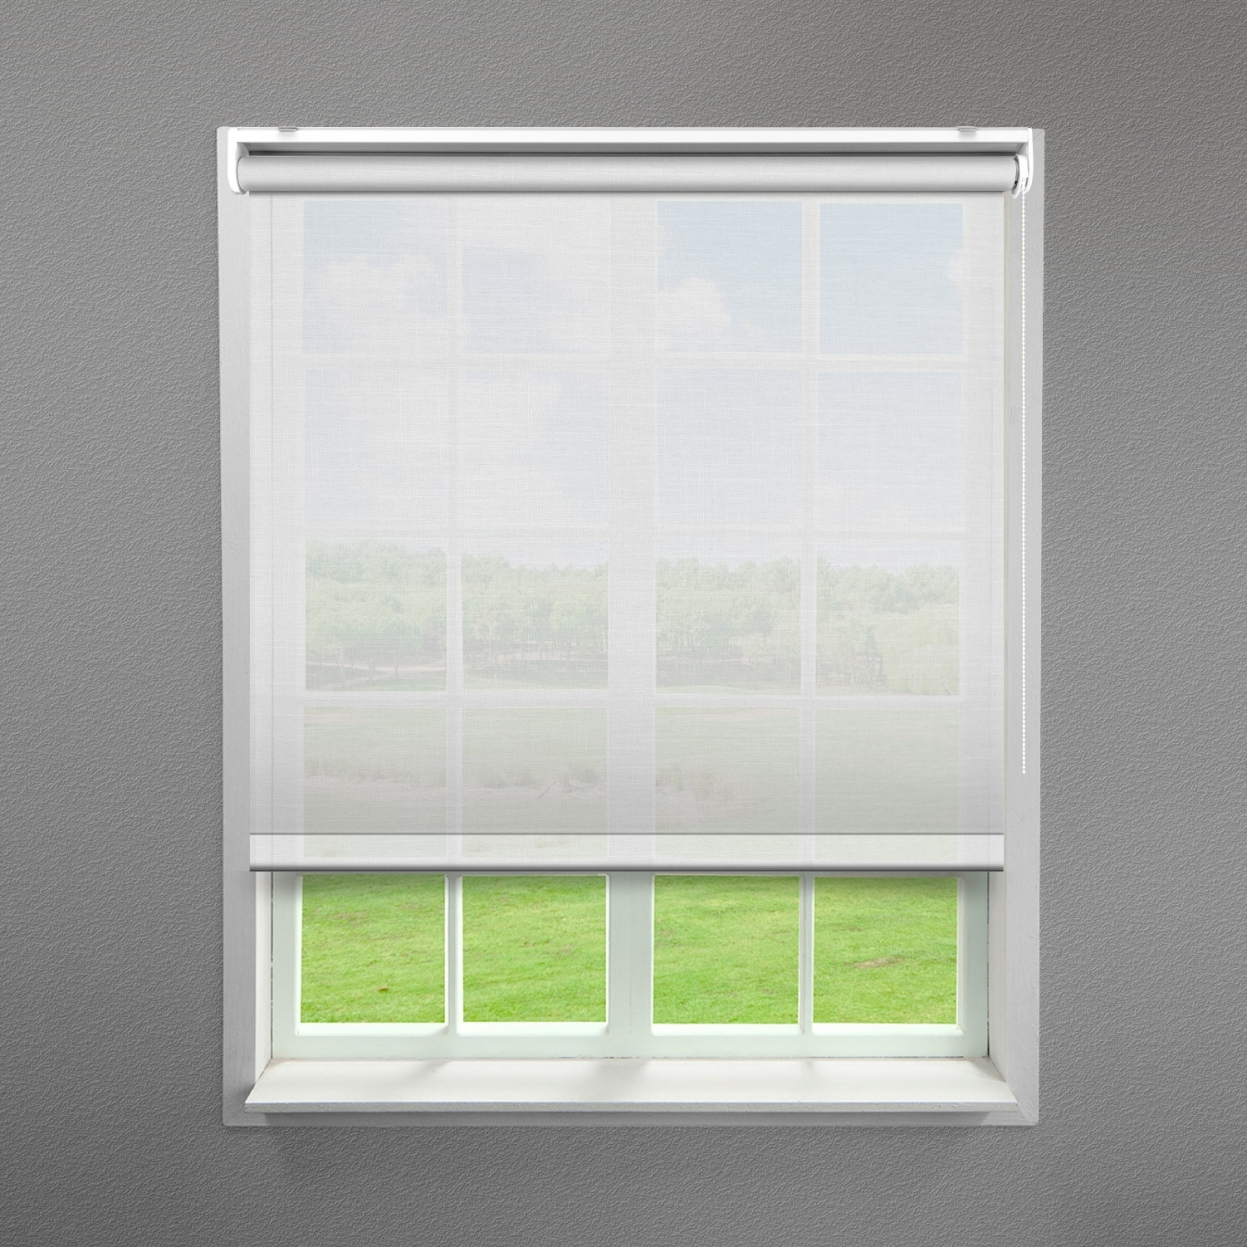 White Tulle Sheer Roller Blind Blinds4value Regarding Sheer Roller Blind (View 2 of 15)